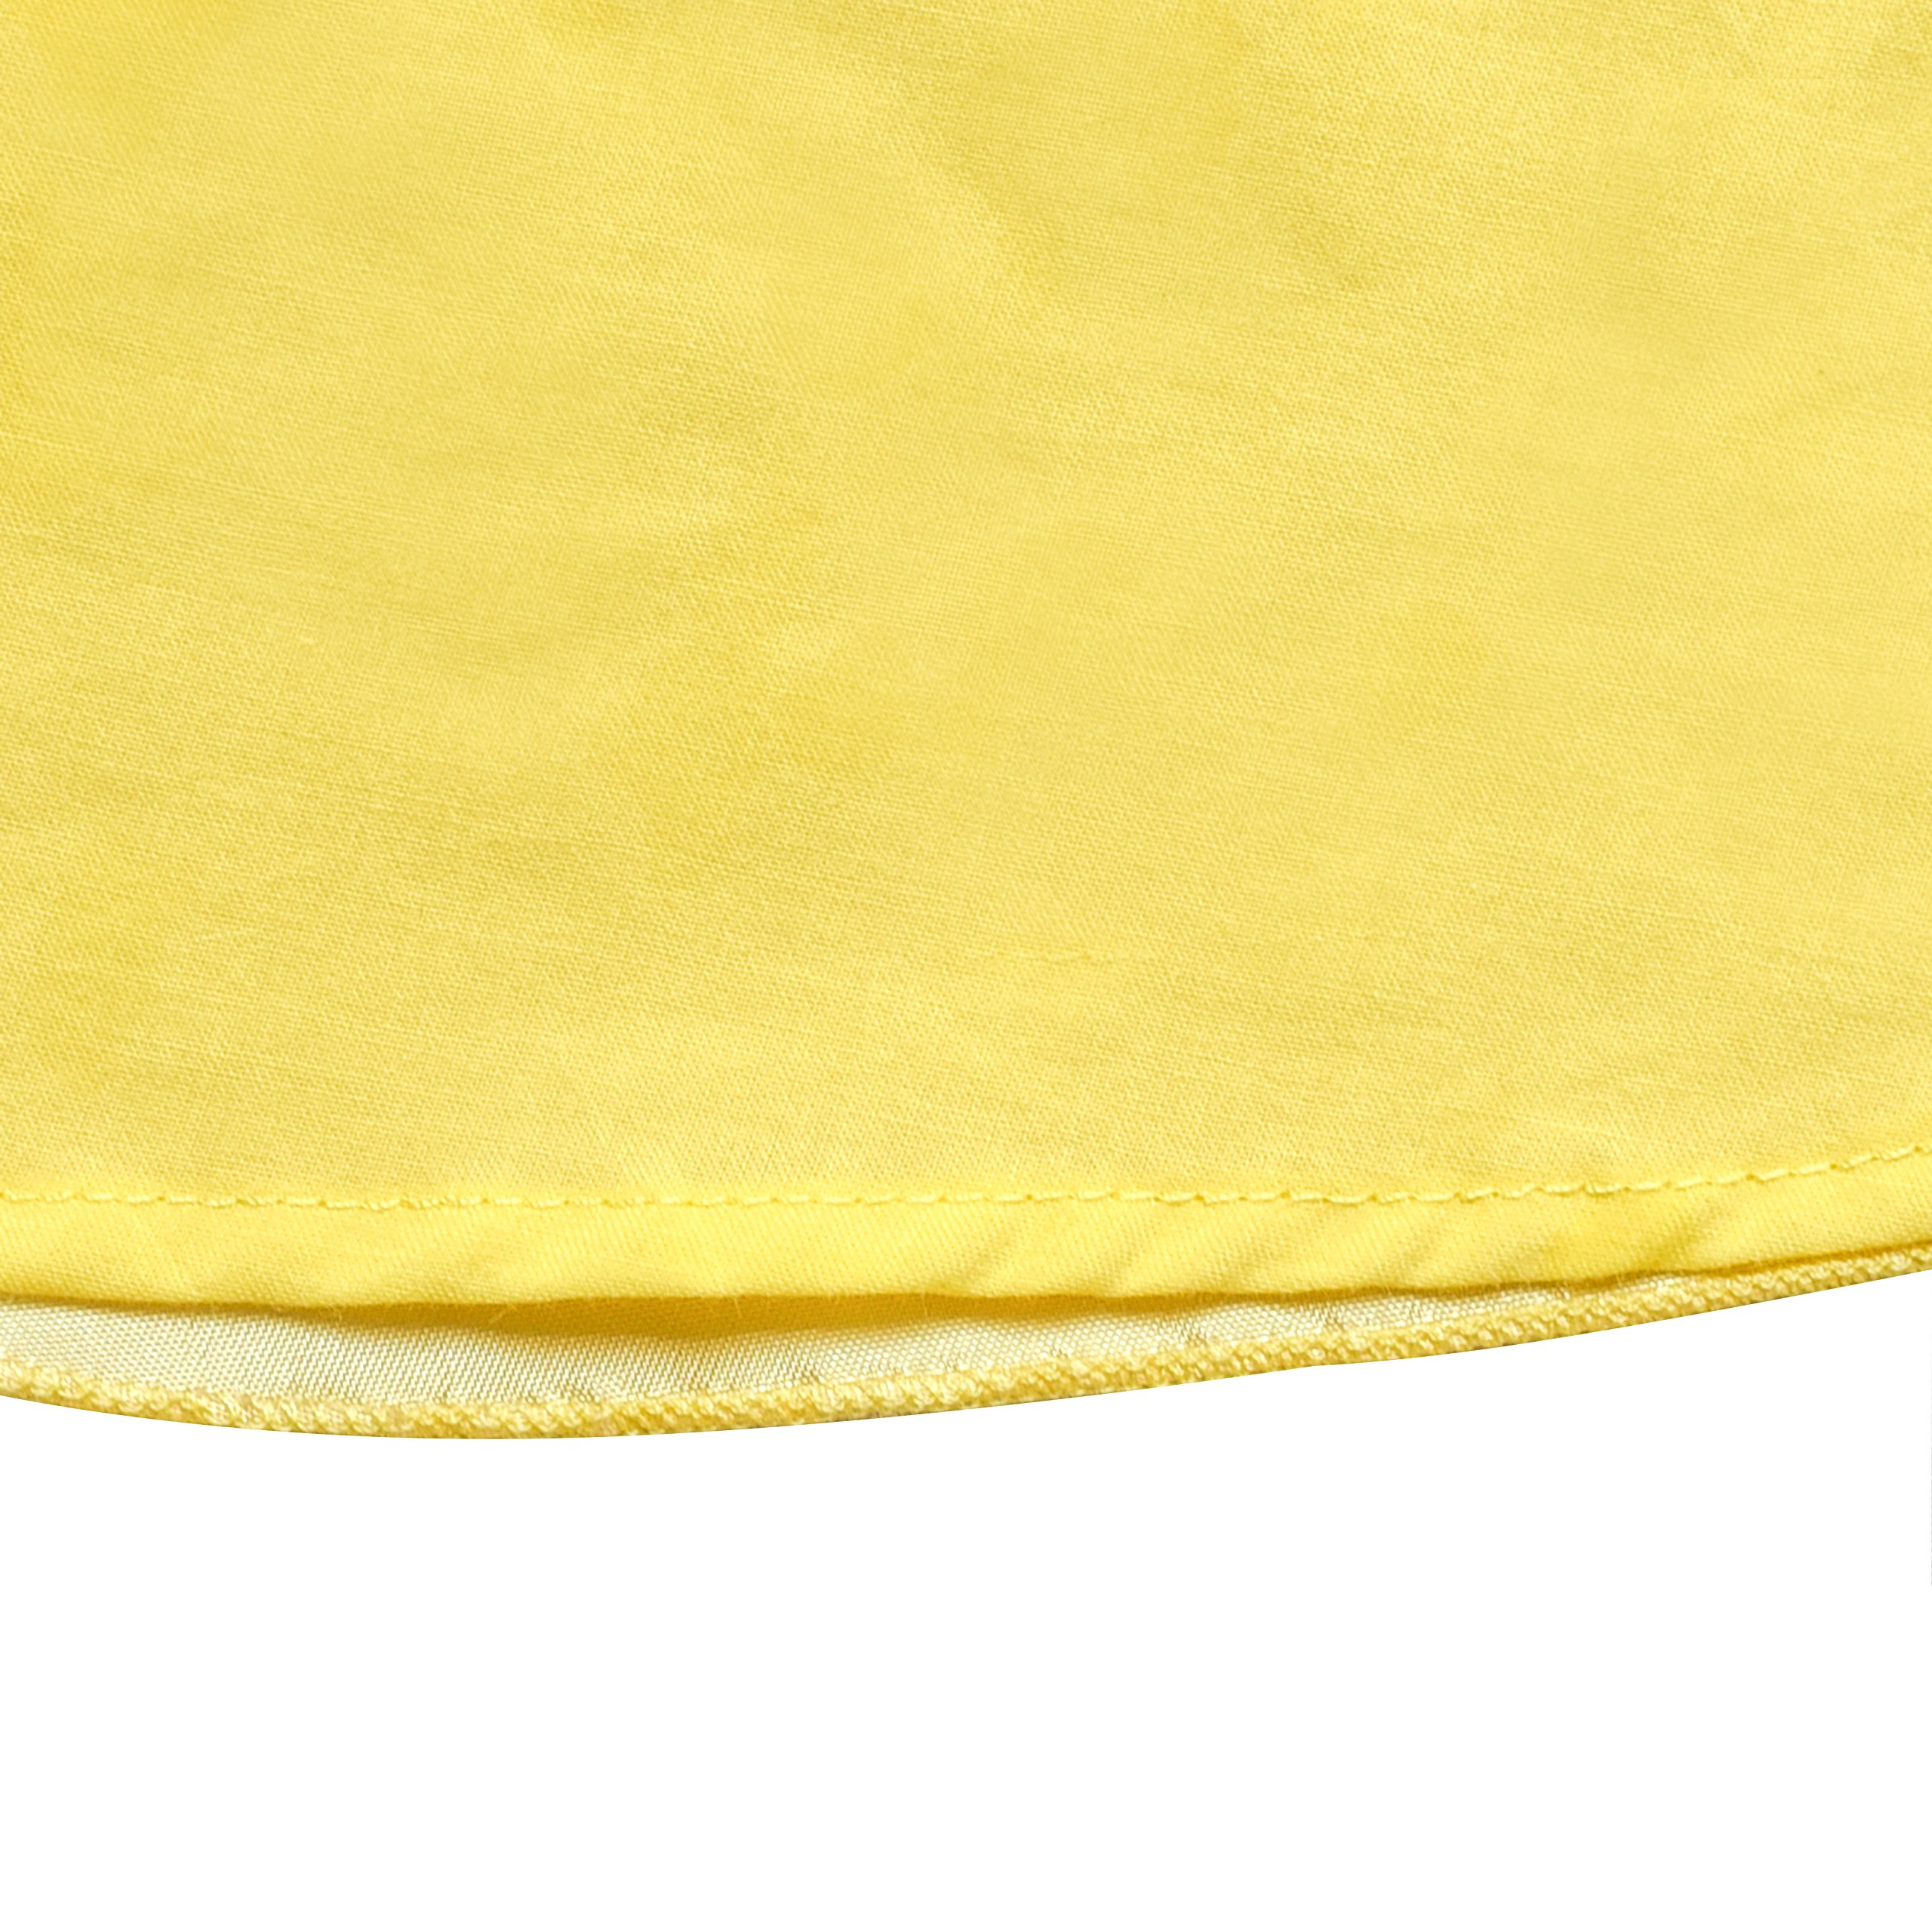 Girls Dress Yellow Princess Belle Costume Birthday Party Size 6 by Sunny Fashion (Image #5)